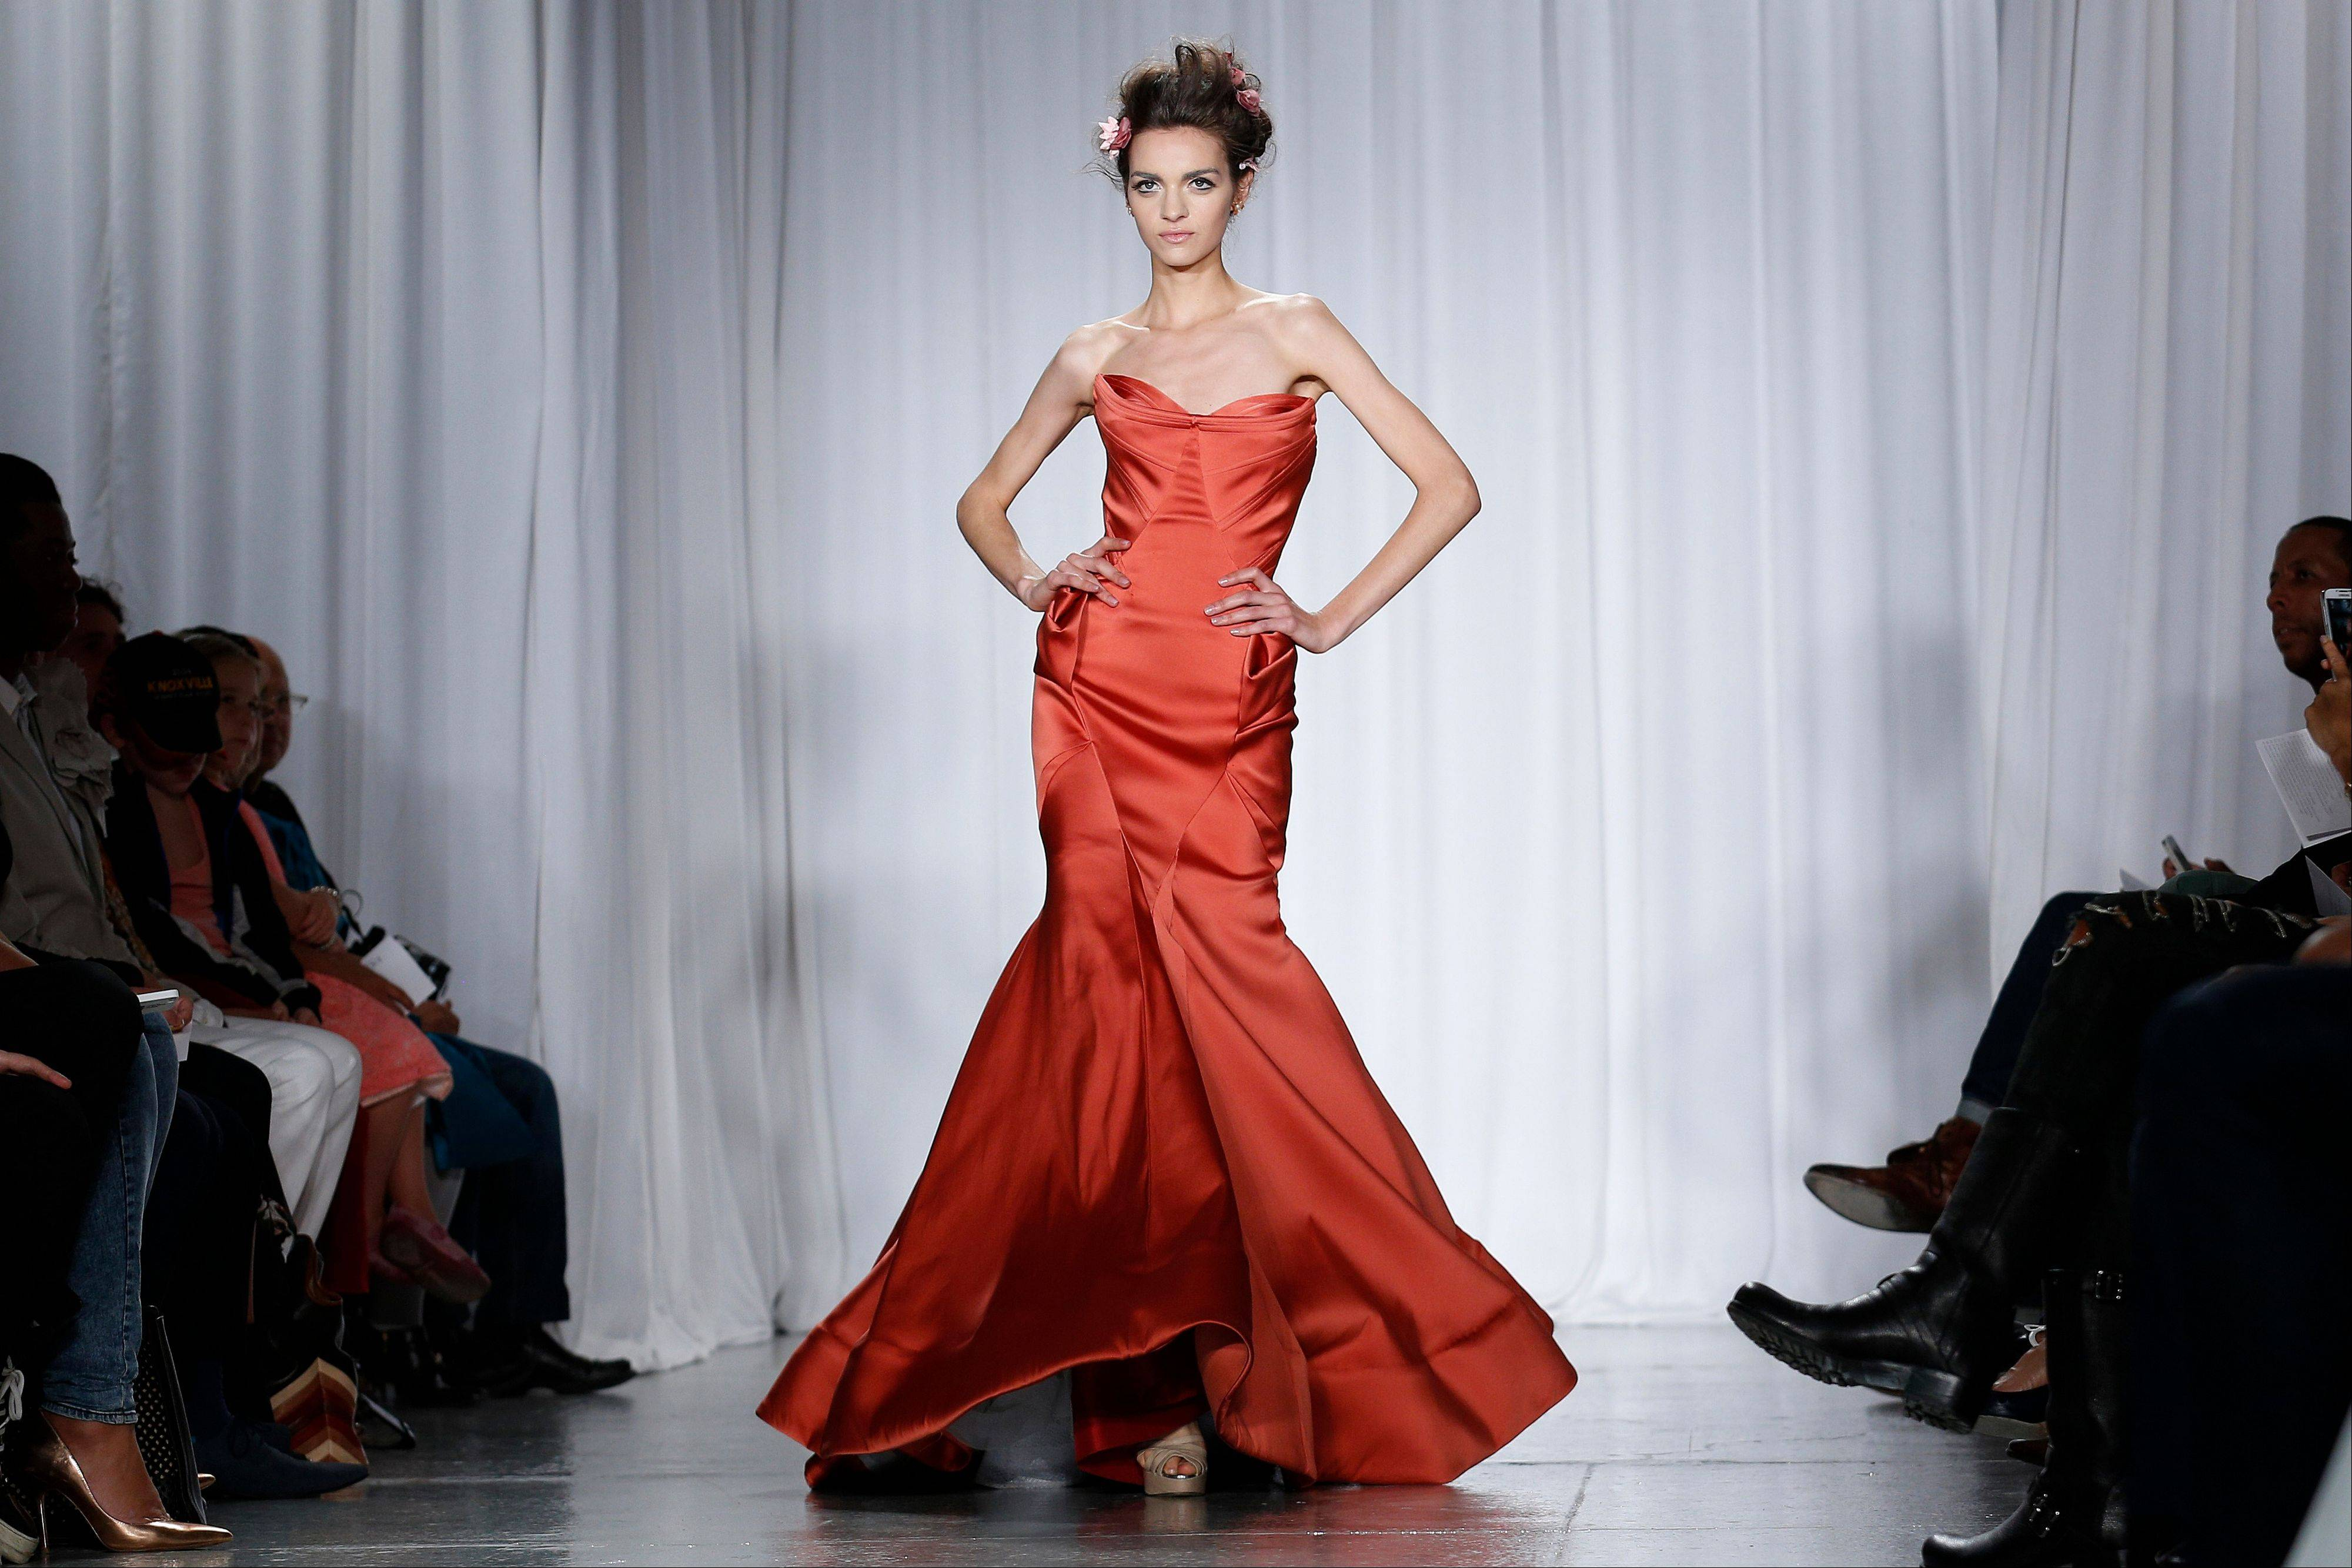 The Zac Posen 2014 collection is modeled during Fashion Week in New York.